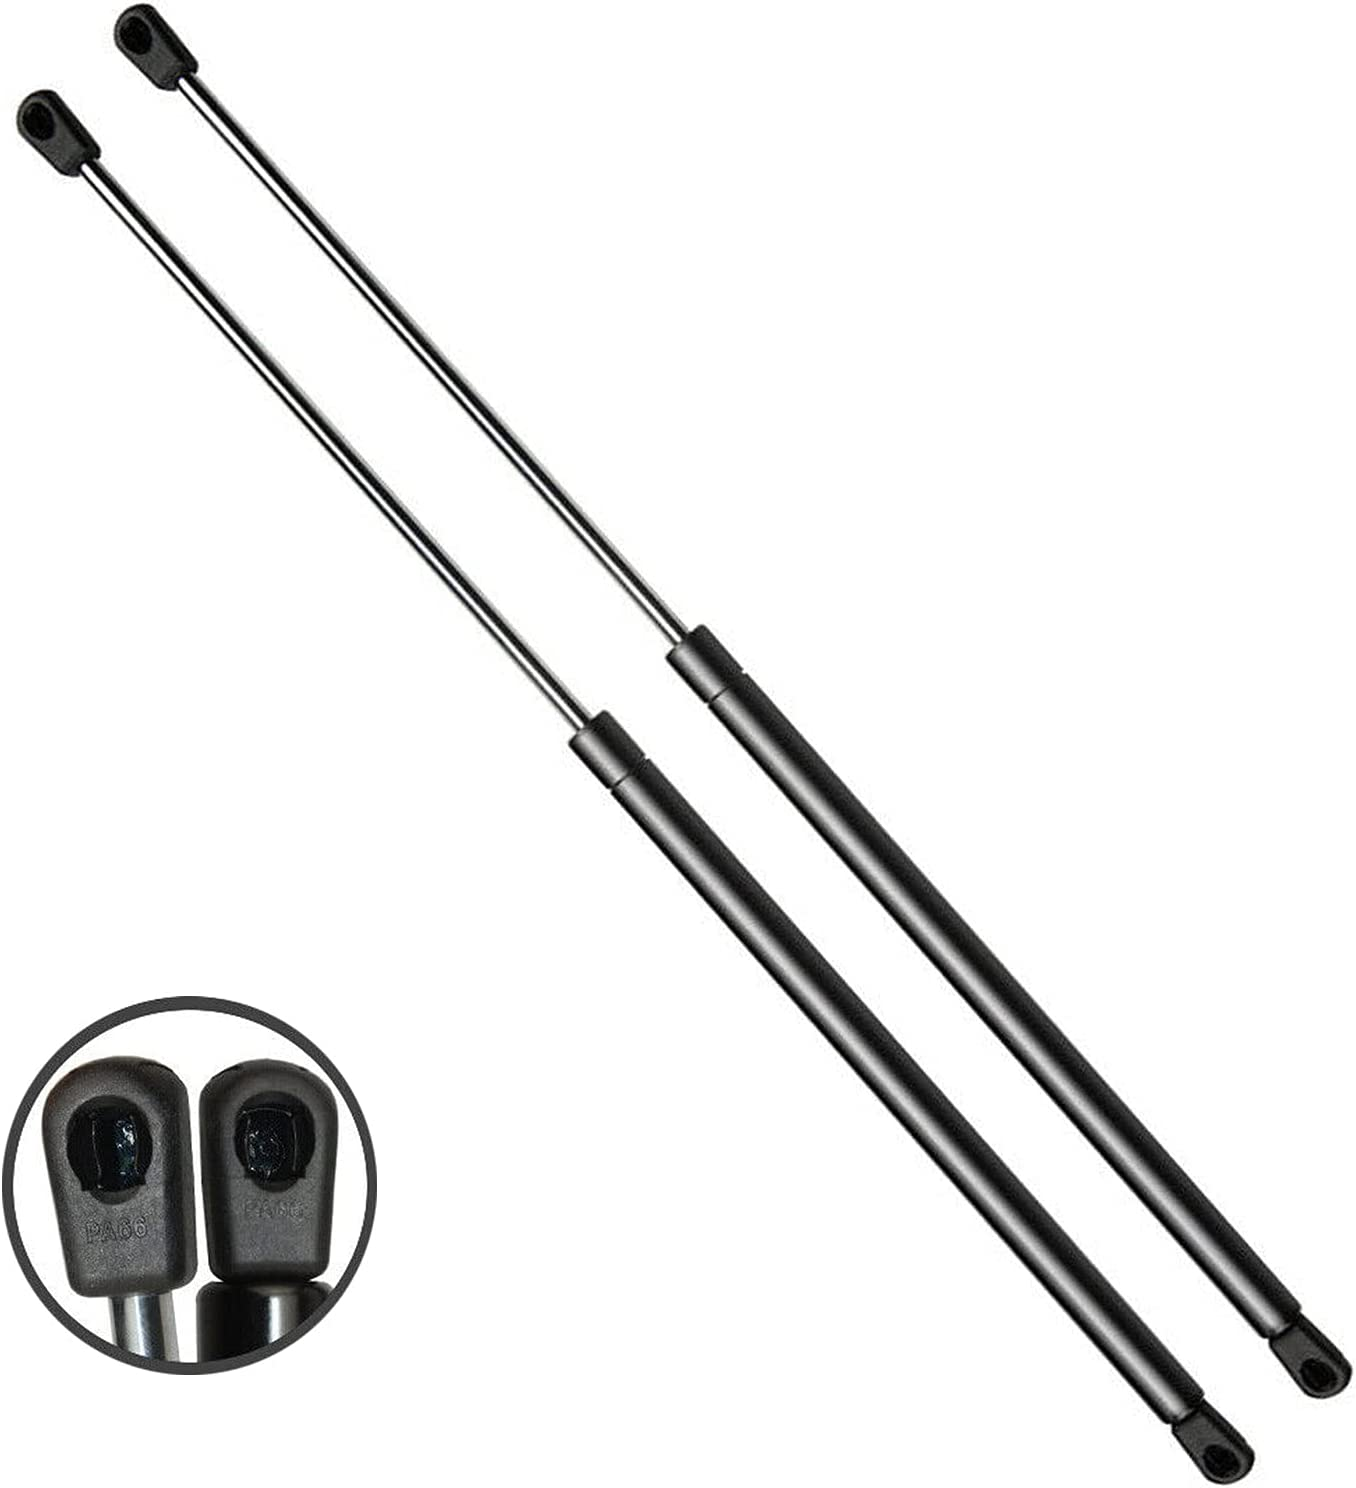 Manufacturer regenerated product Set Max 45% OFF of 2 Rear Trunk Hatch Shock Liftgate Support Strut for Lift